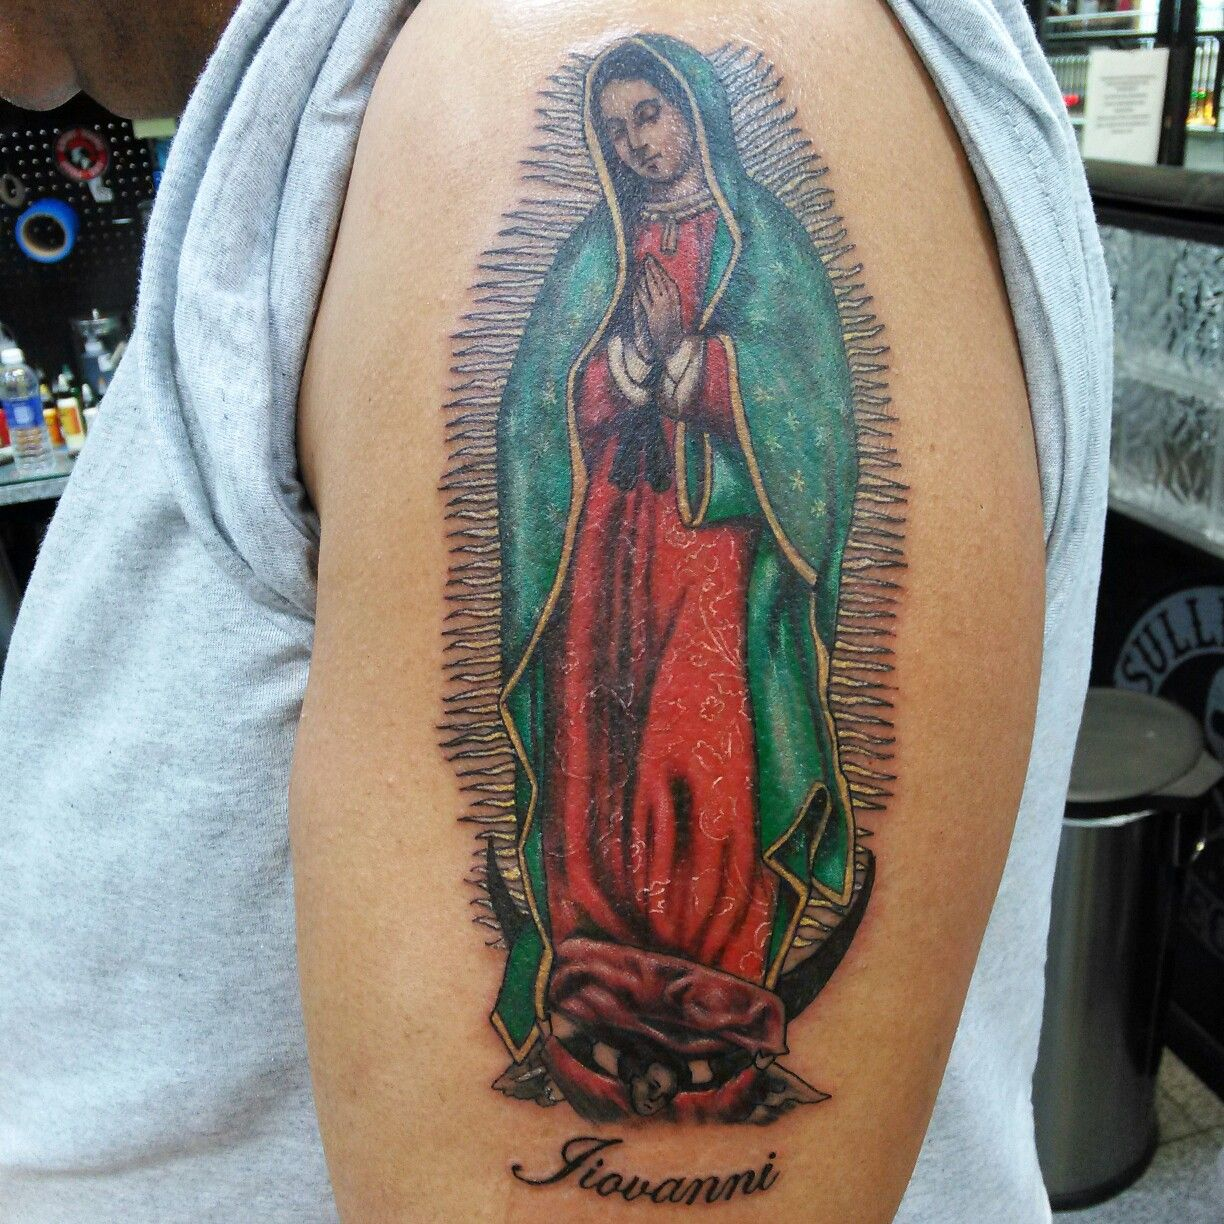 Virgen de guadalupe color tattoo tattoos by me for Virgen de guadalupe tattoo